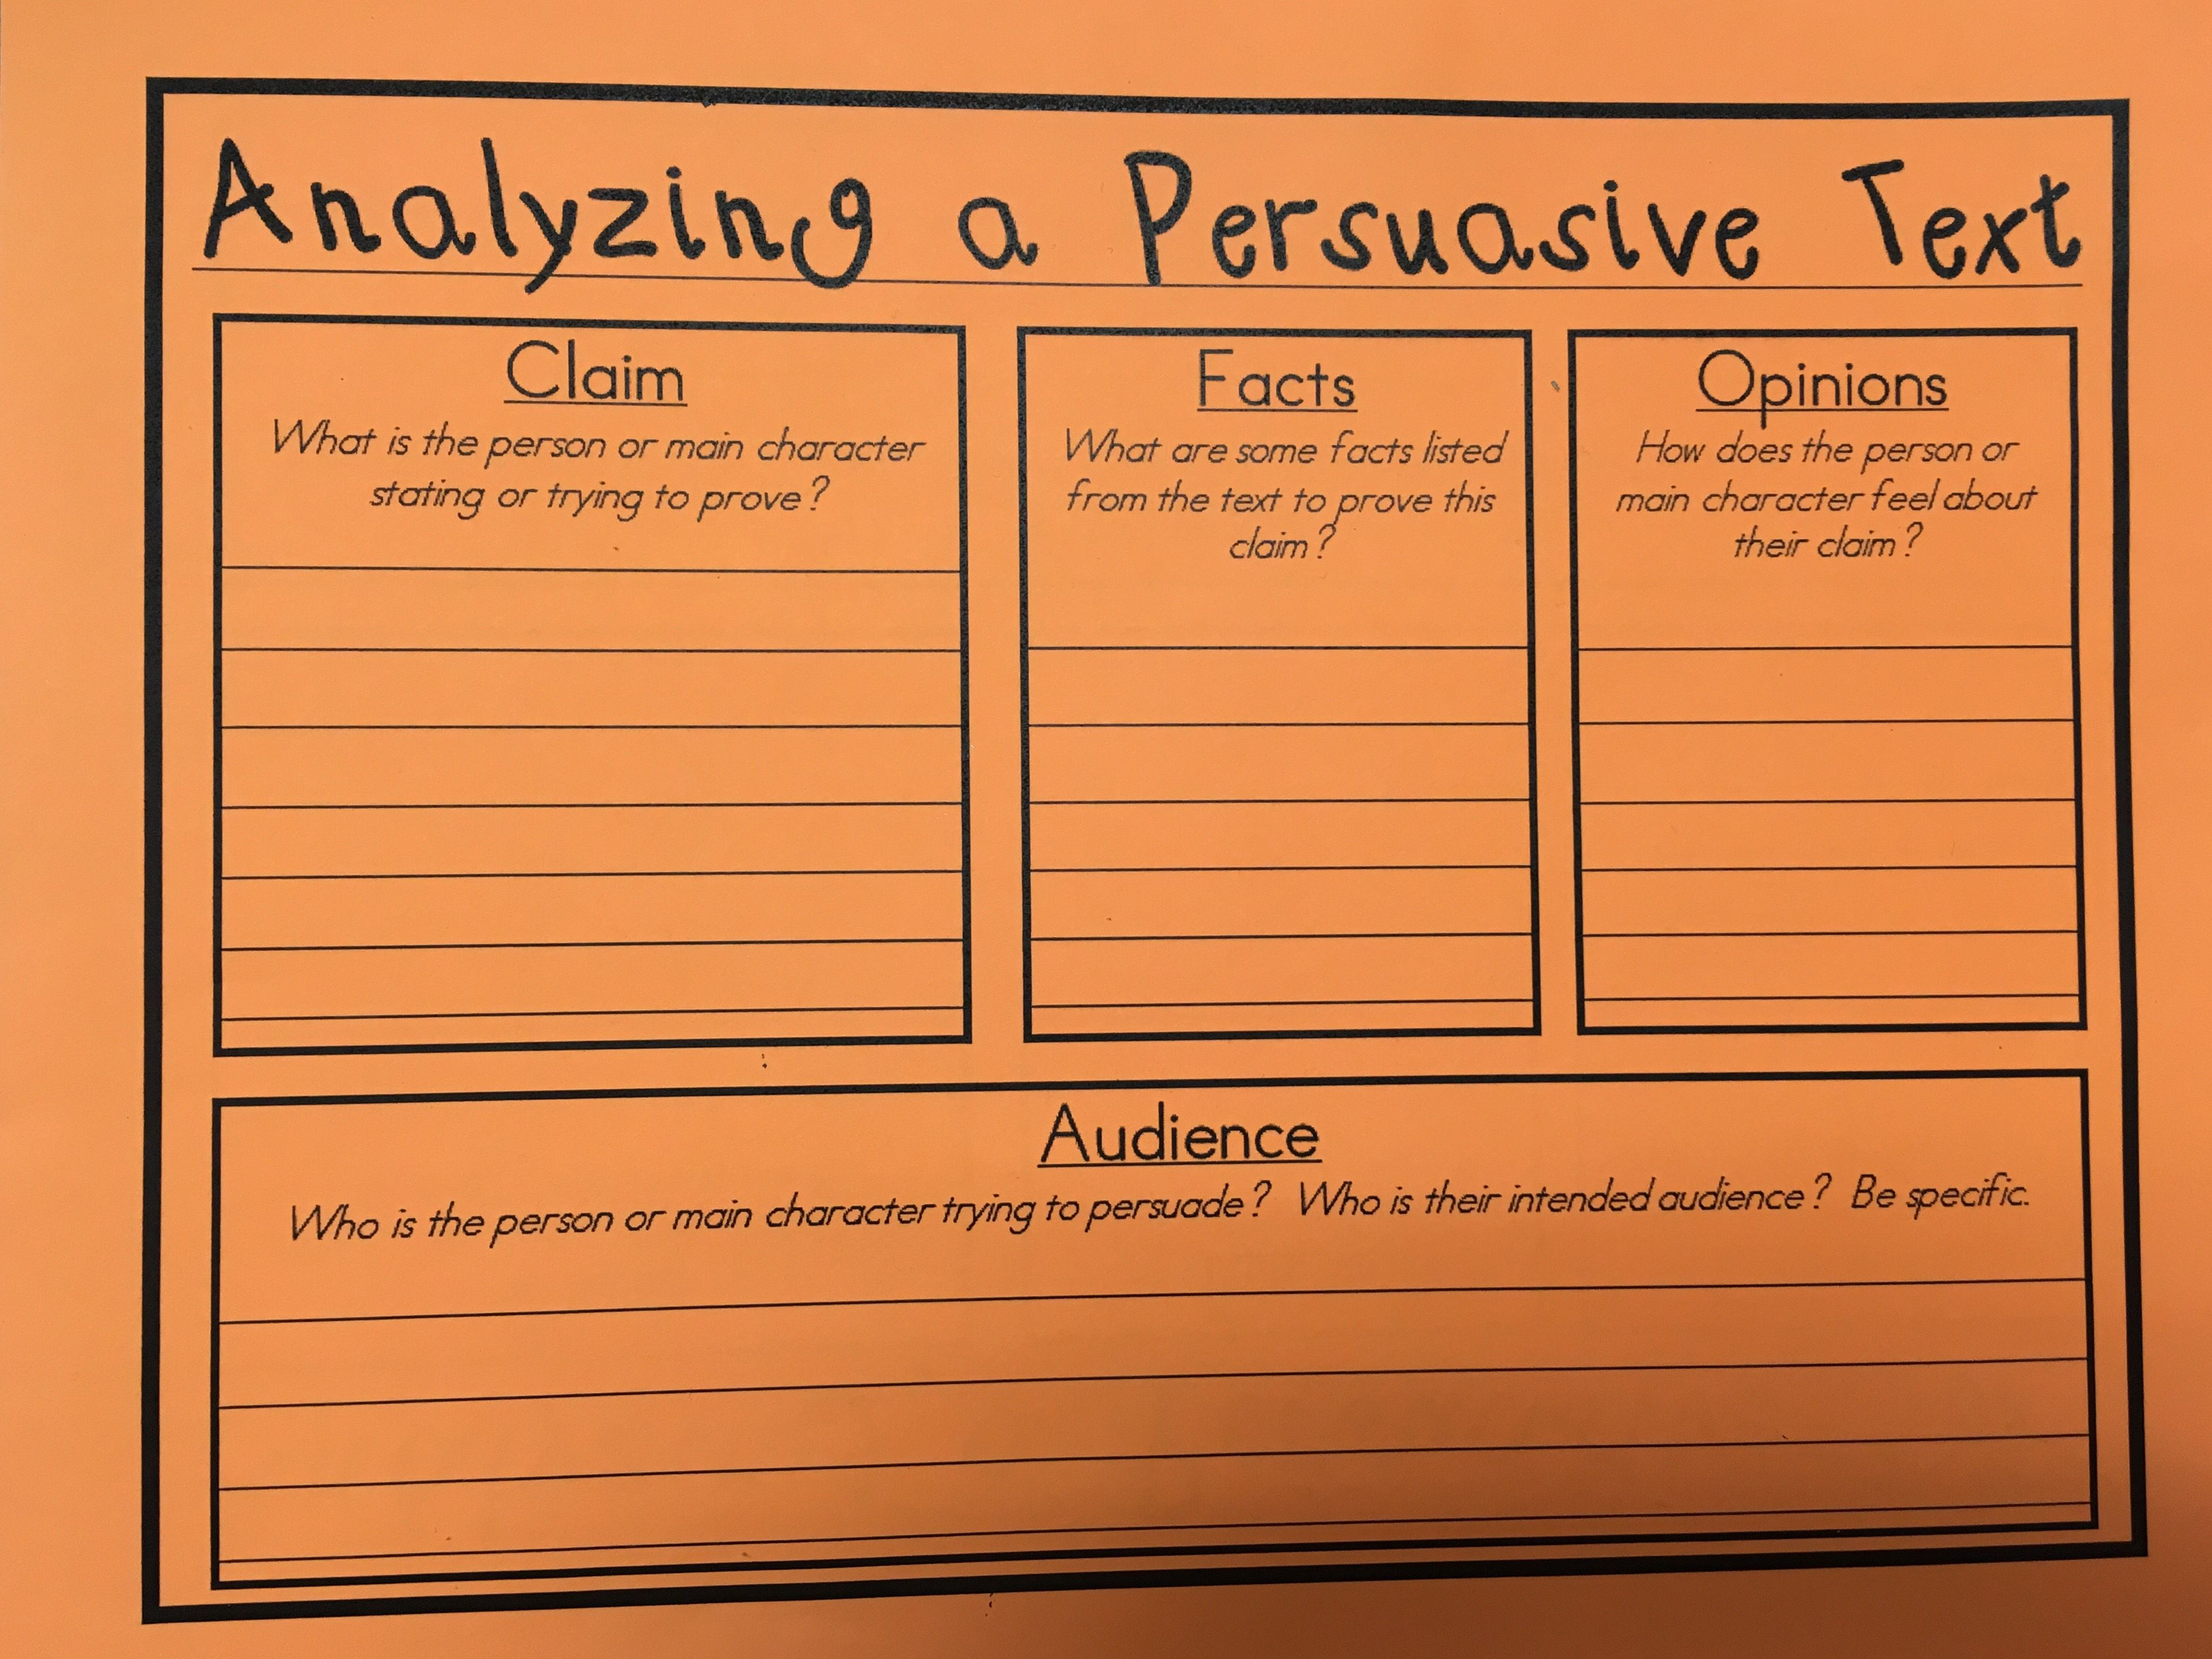 Analyzing A Persuasive Argumentative Text Graphic Organizer Persuasive Text Graphic Organizers Independent Reading Lessons